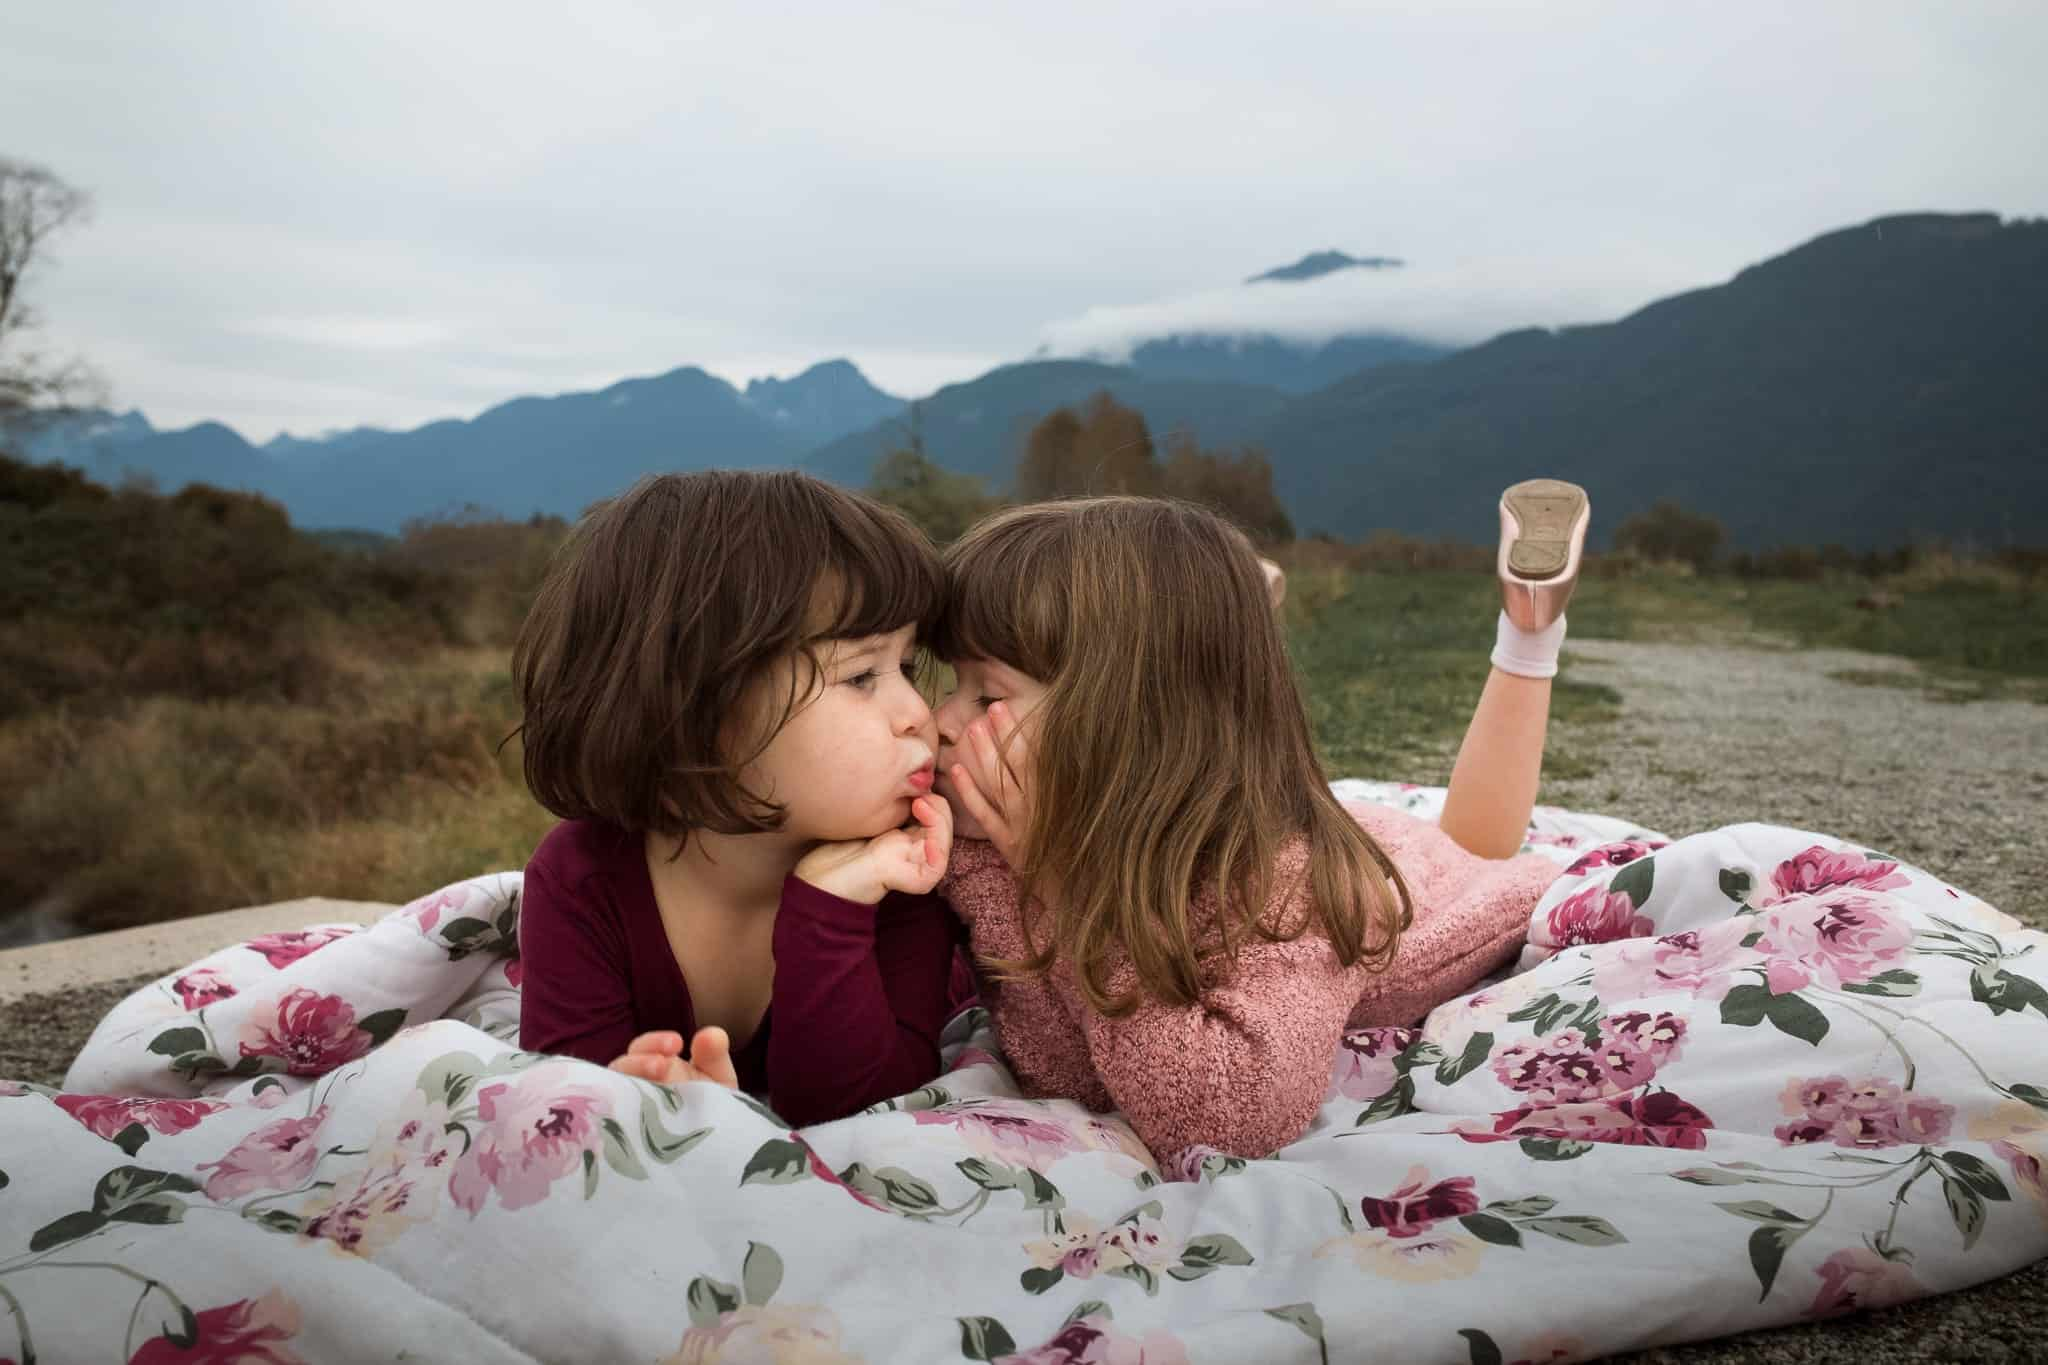 two girls laying on a blanket making kissy faces at each other